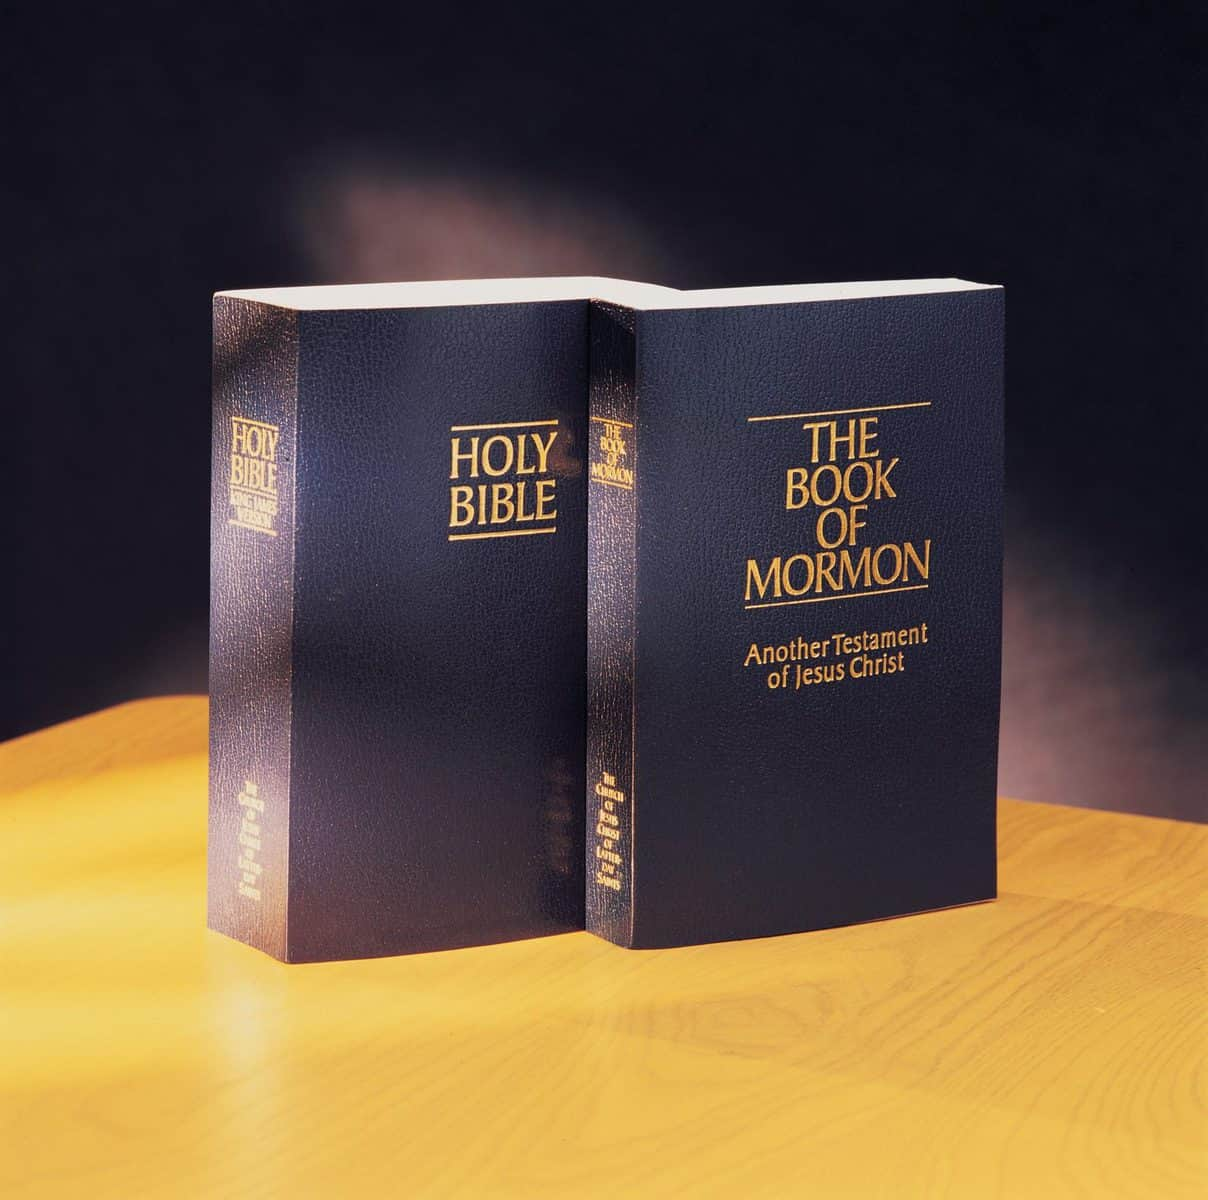 Bible and The Book of Mormon